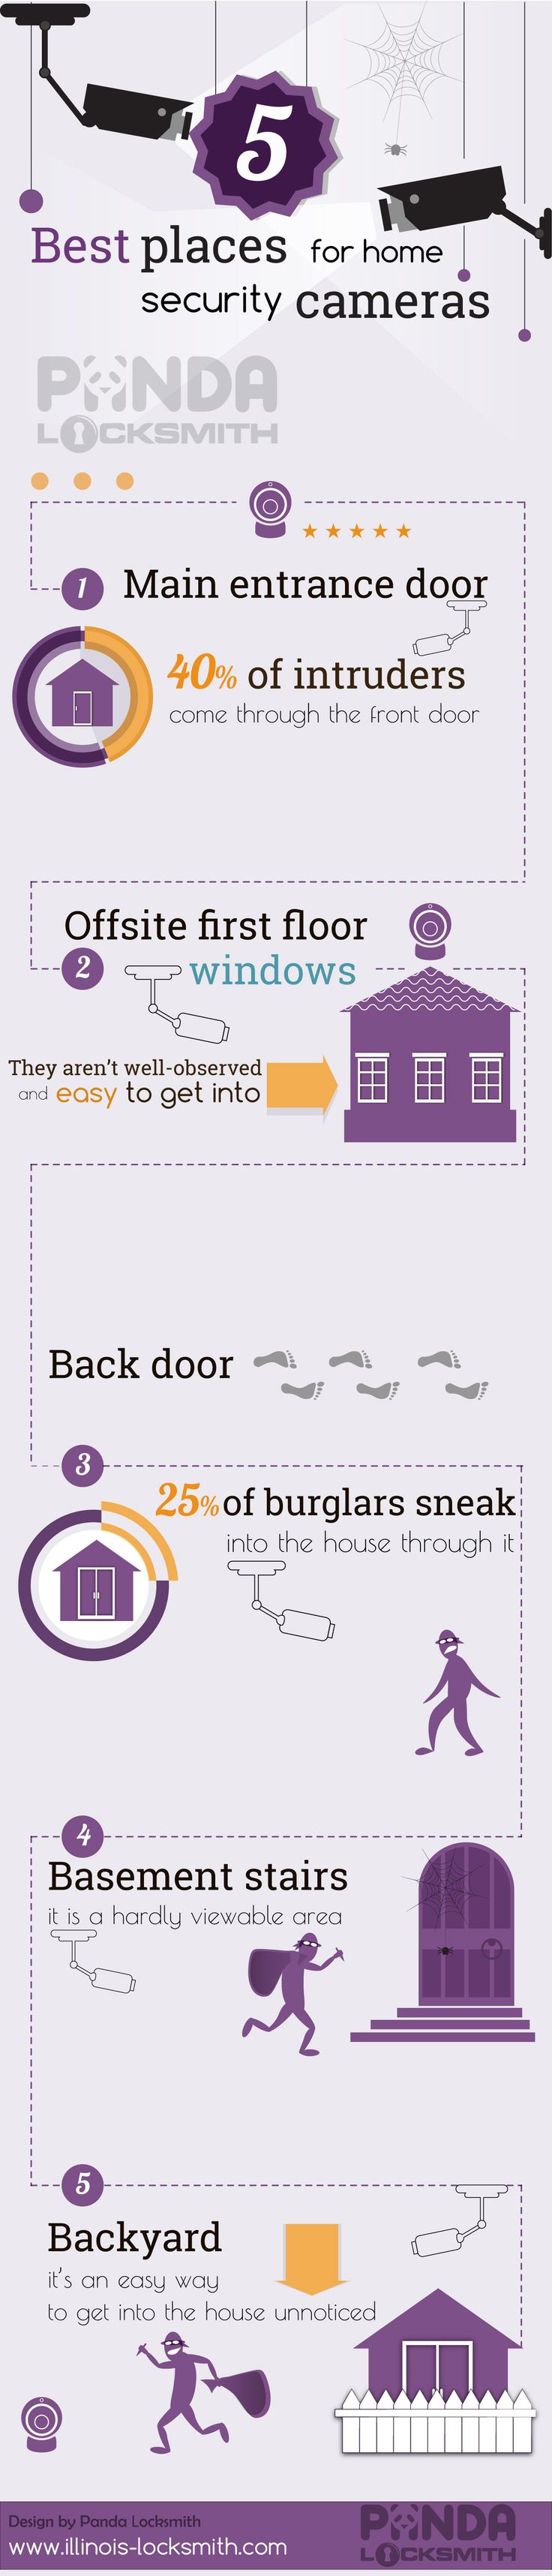 Thinking about installing a security camera? 5 best spots to do so!  http://www.illinois-locksmith.com/locksmith-infographics/5-best-places-for-home-security-cameras/